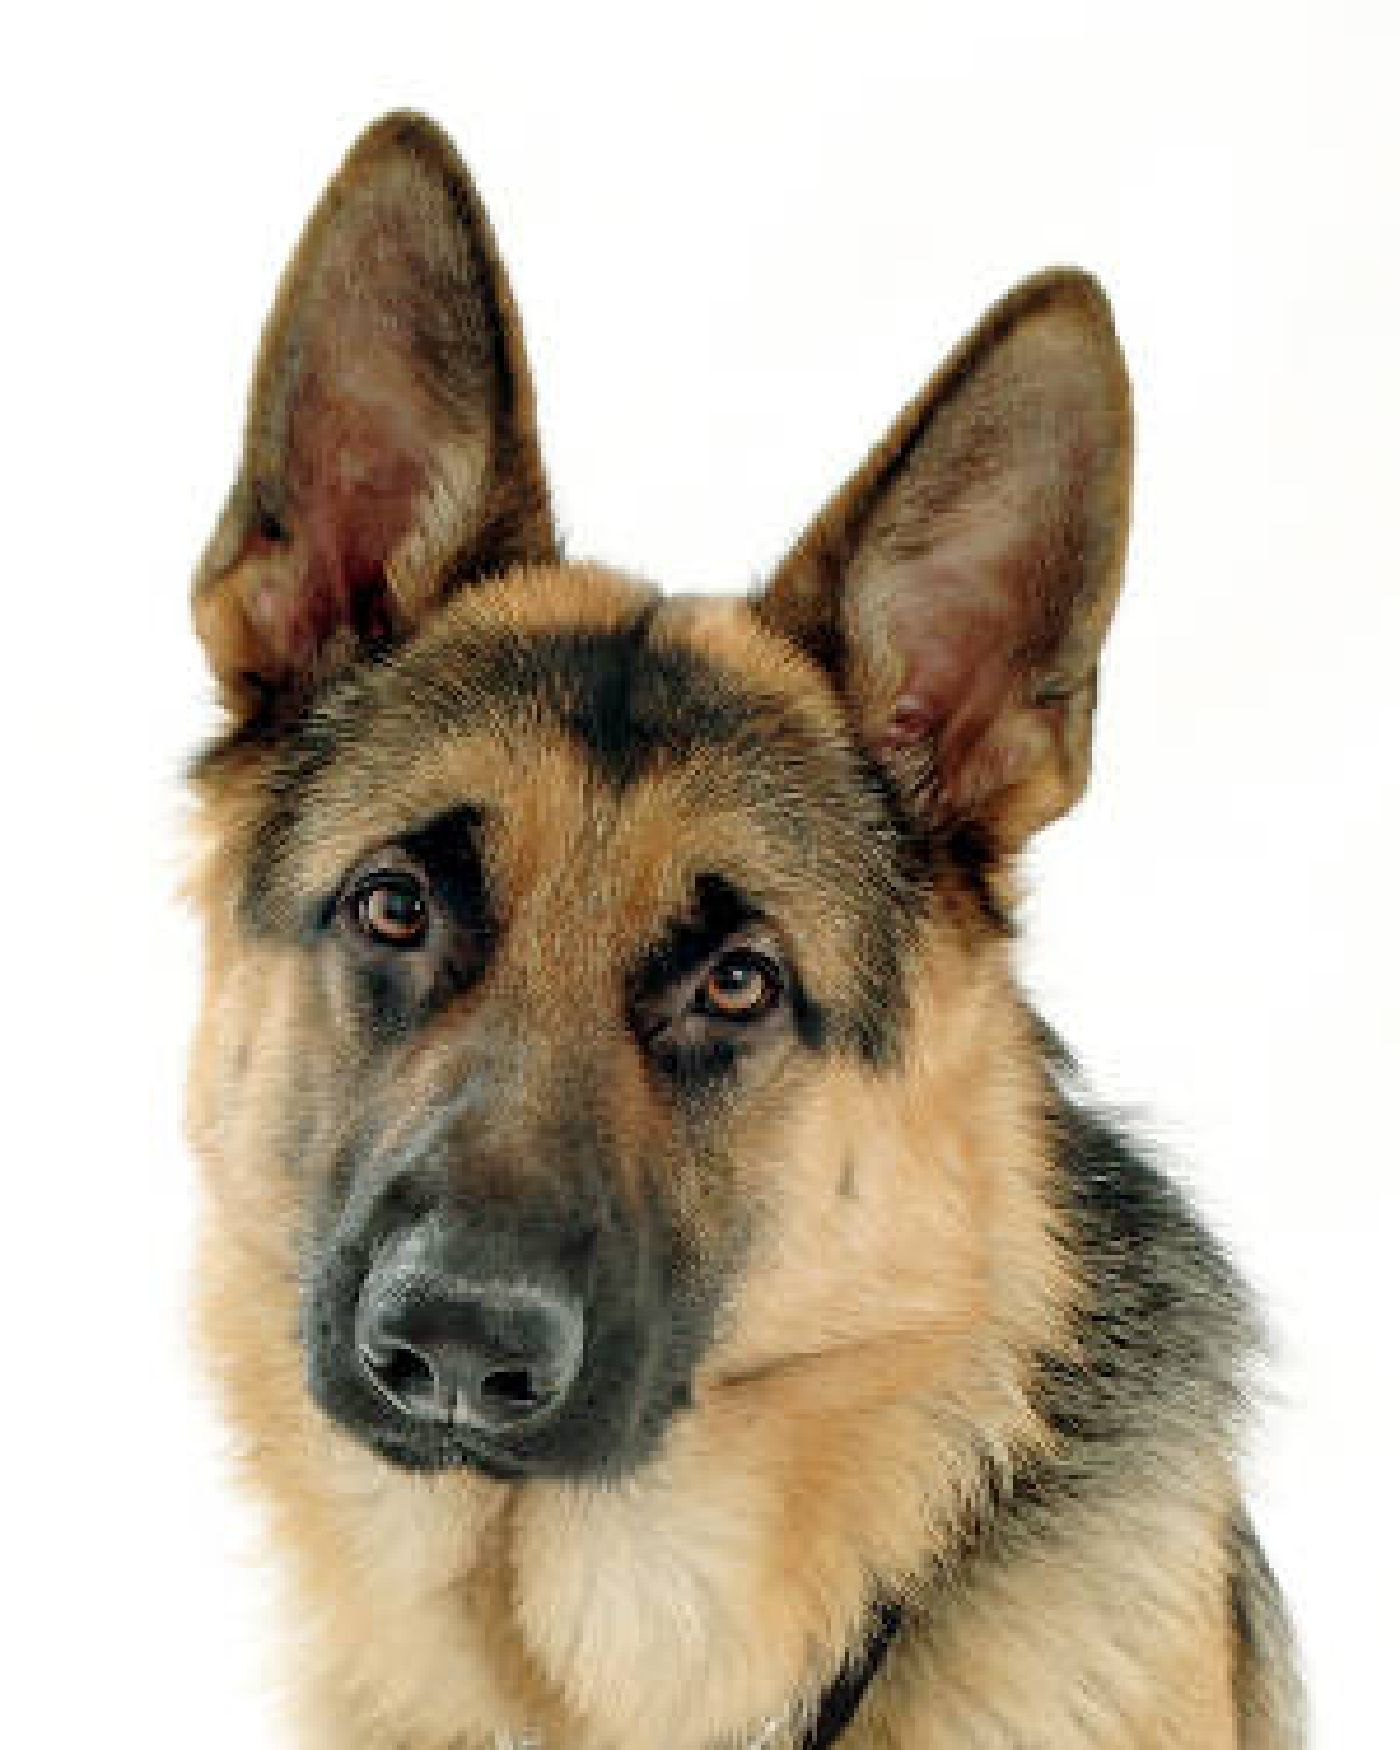 Image of a German Shepherd's face